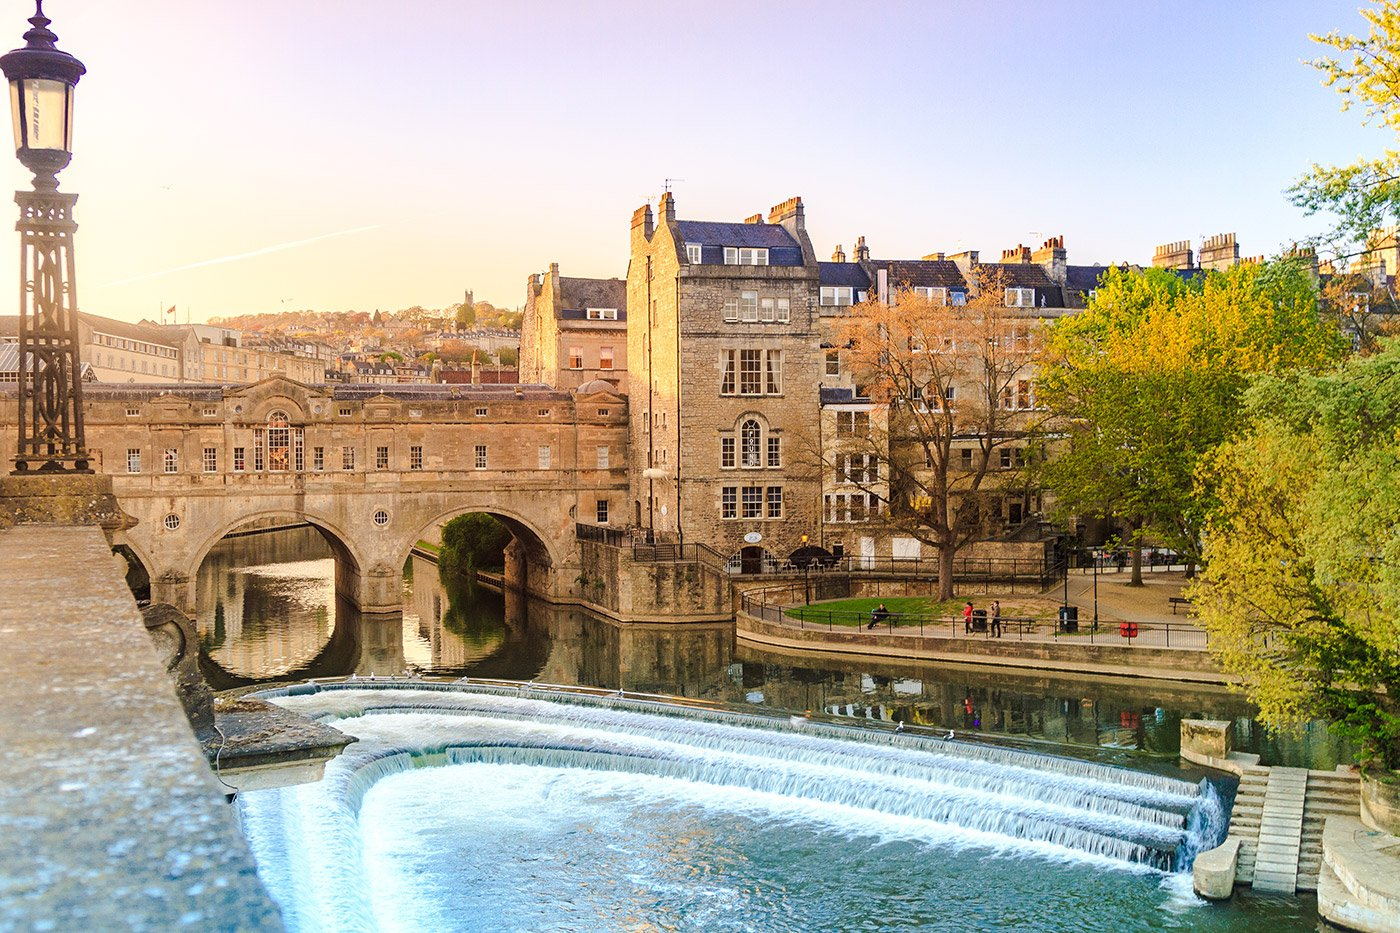 Relocating to Bath from London? – Pick Thomas Firbank